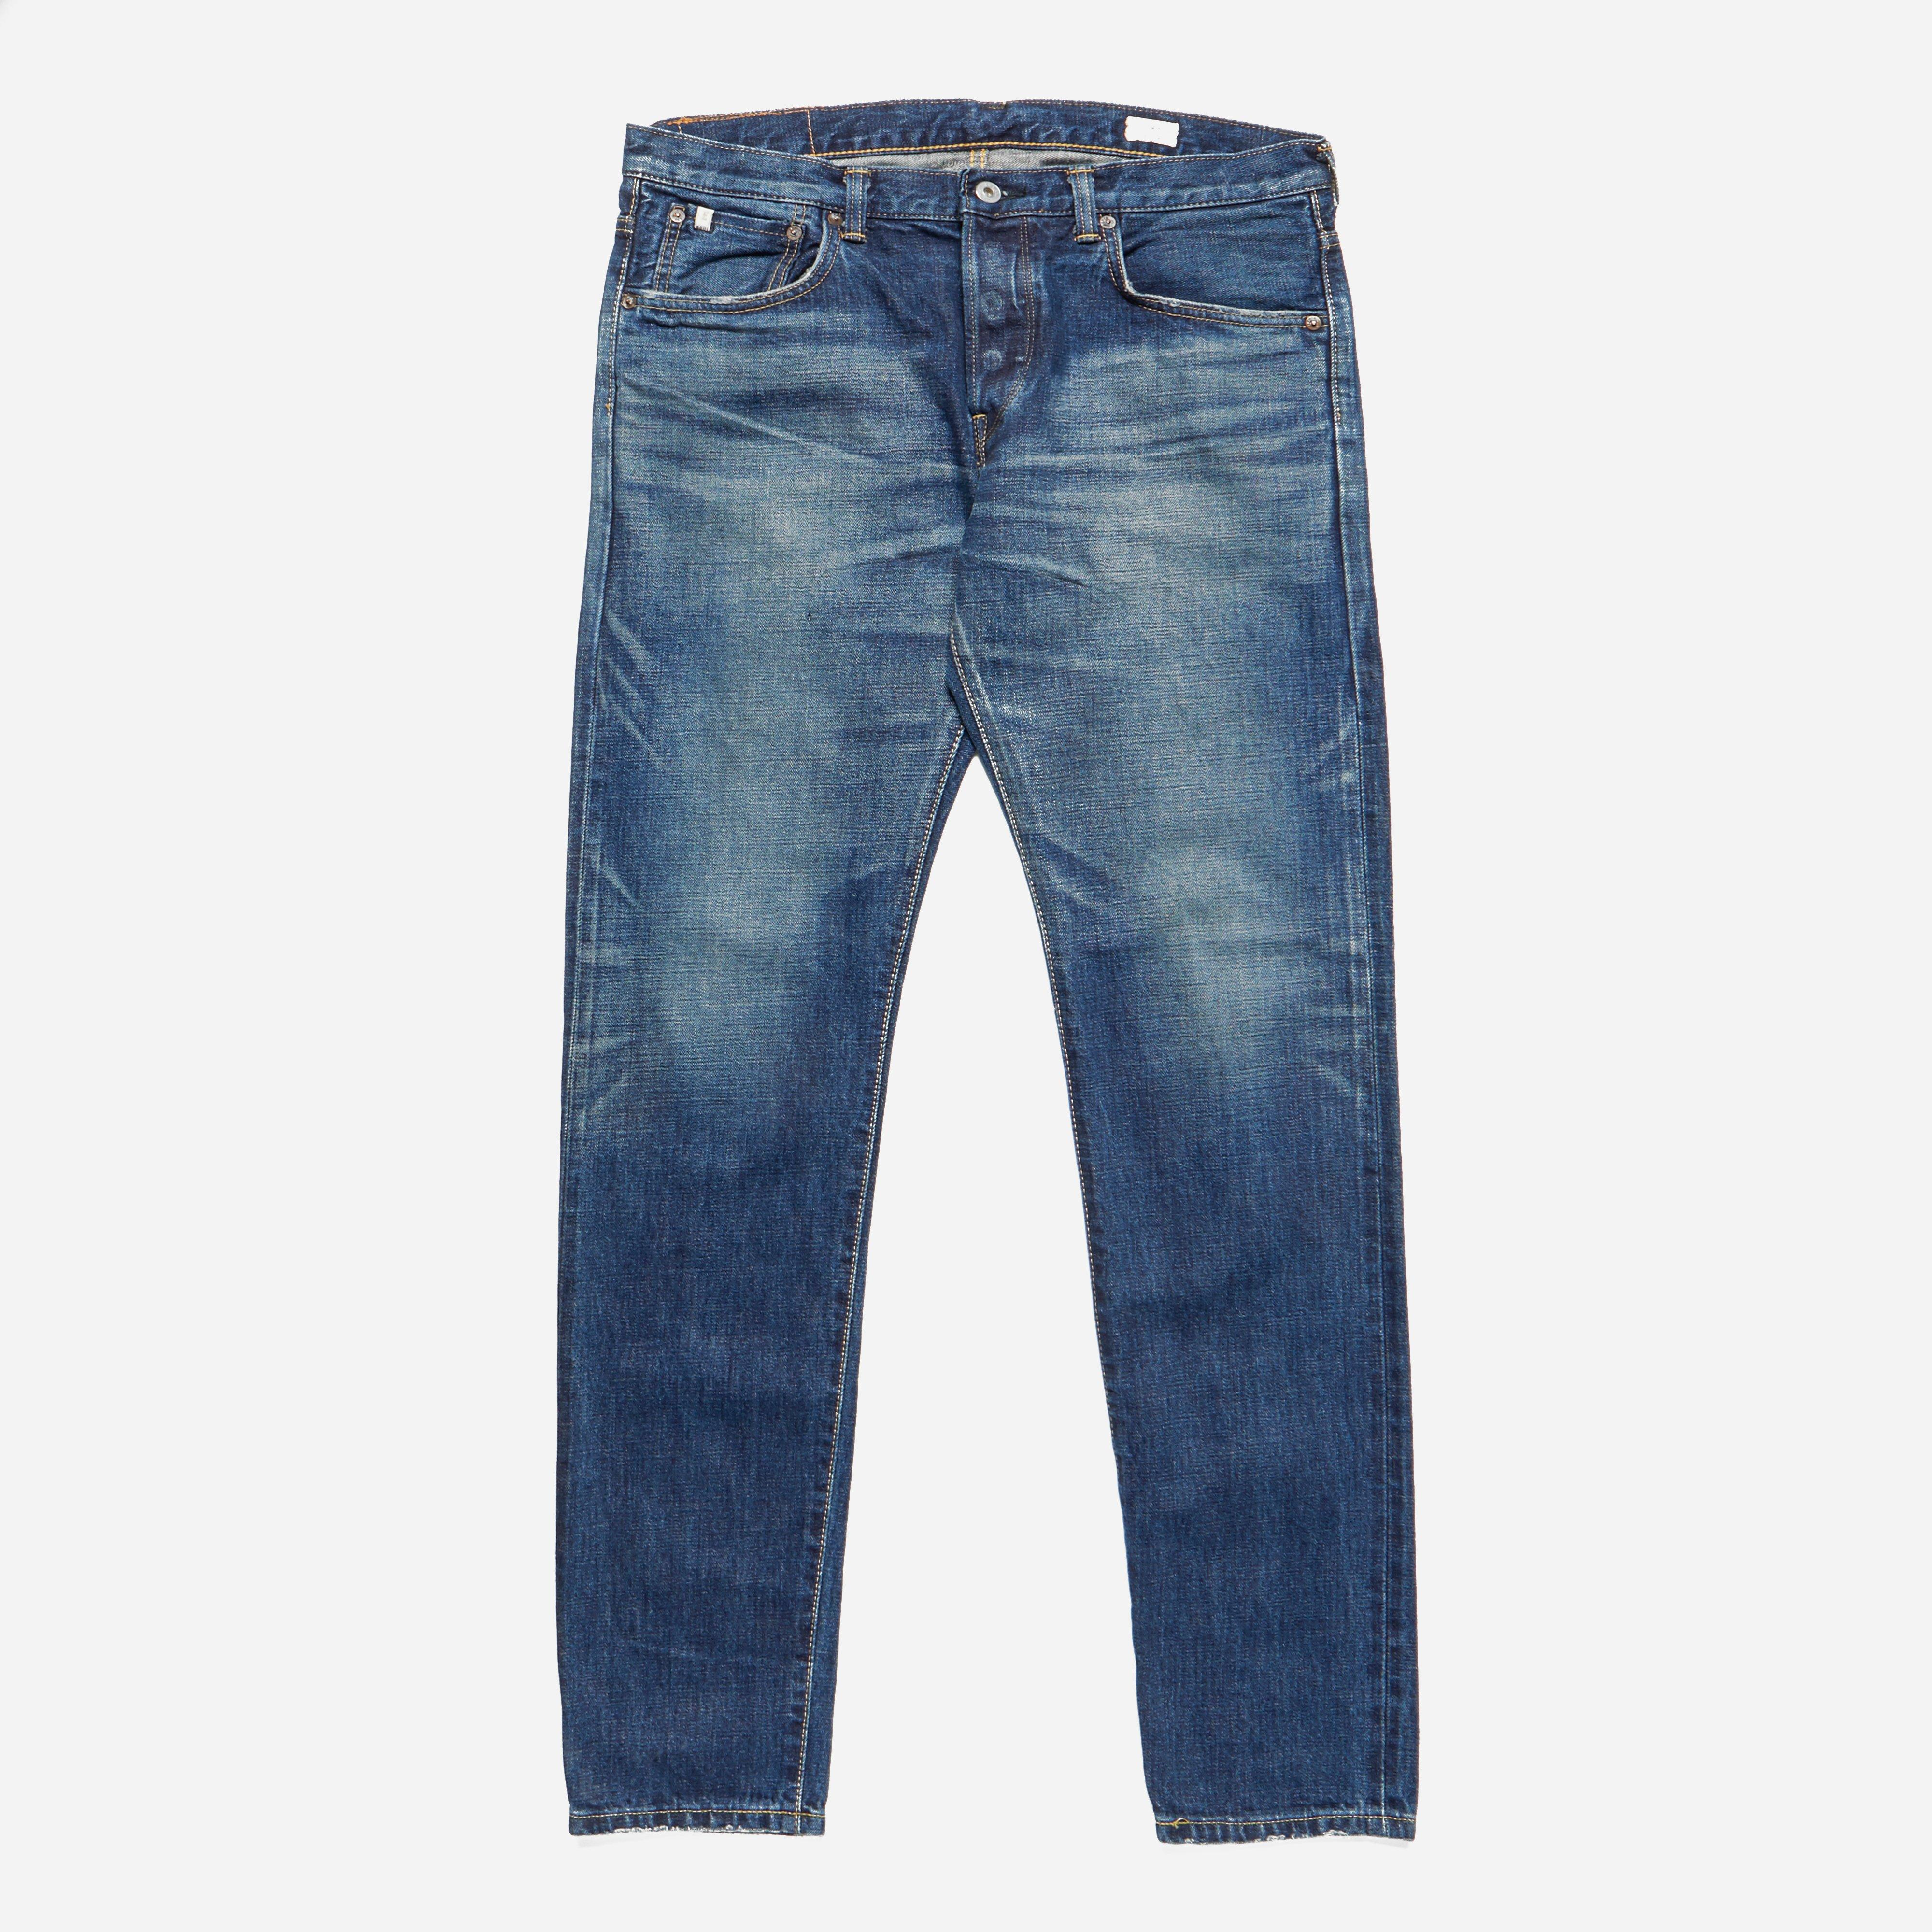 Edwin Classic Regular Tapered Rainbow Selvage Japan Denim Dark Used